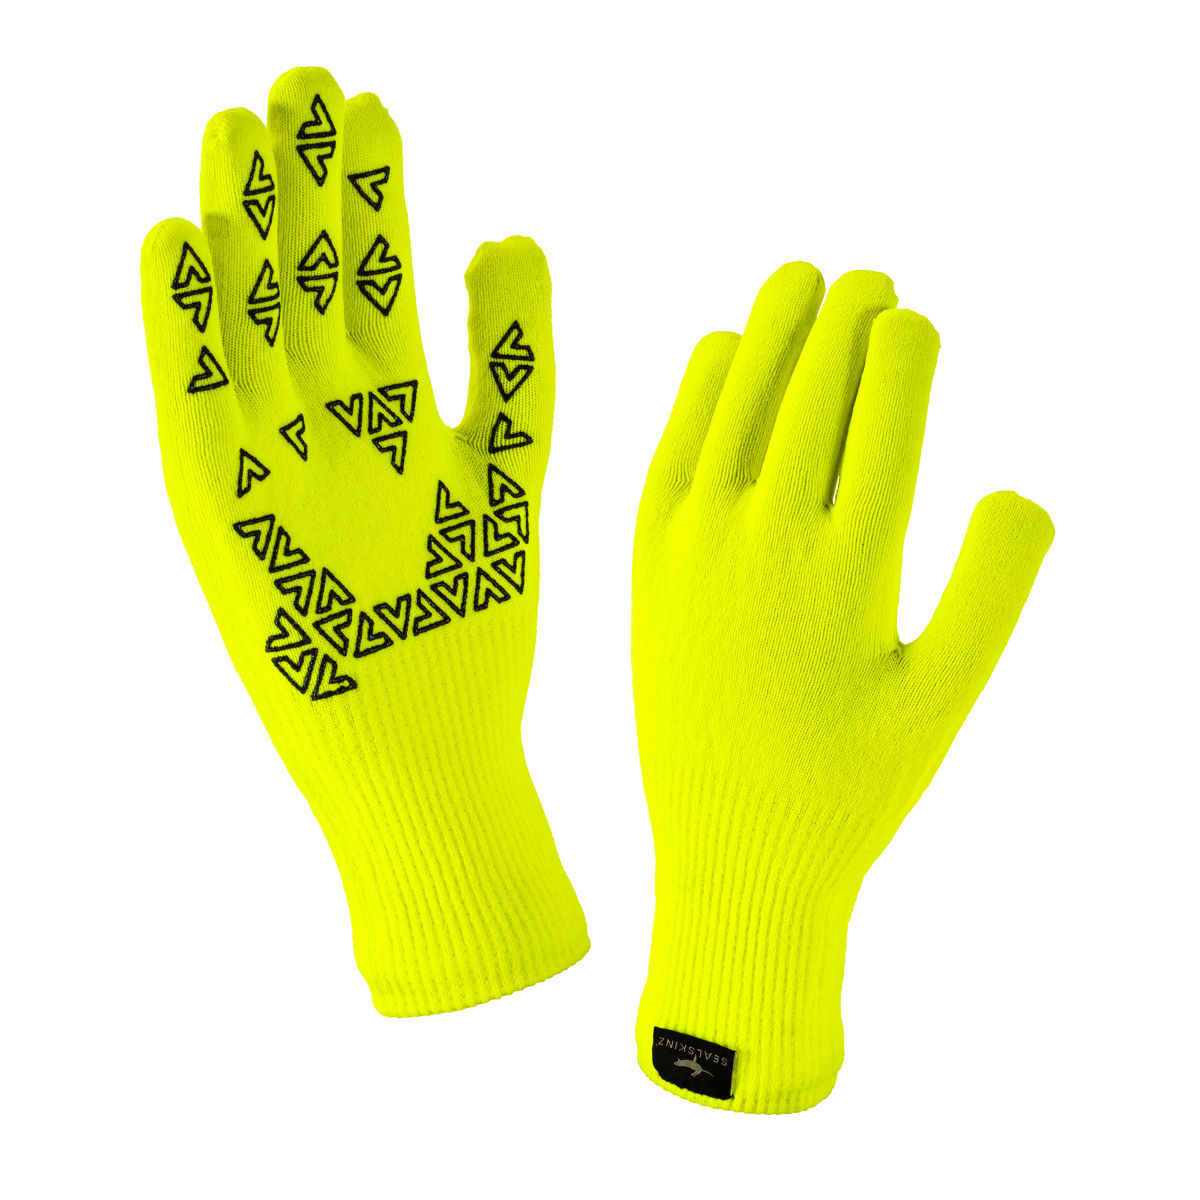 Gants SealSkinz Ultra Grip - L Yellow/Anthracite Gants